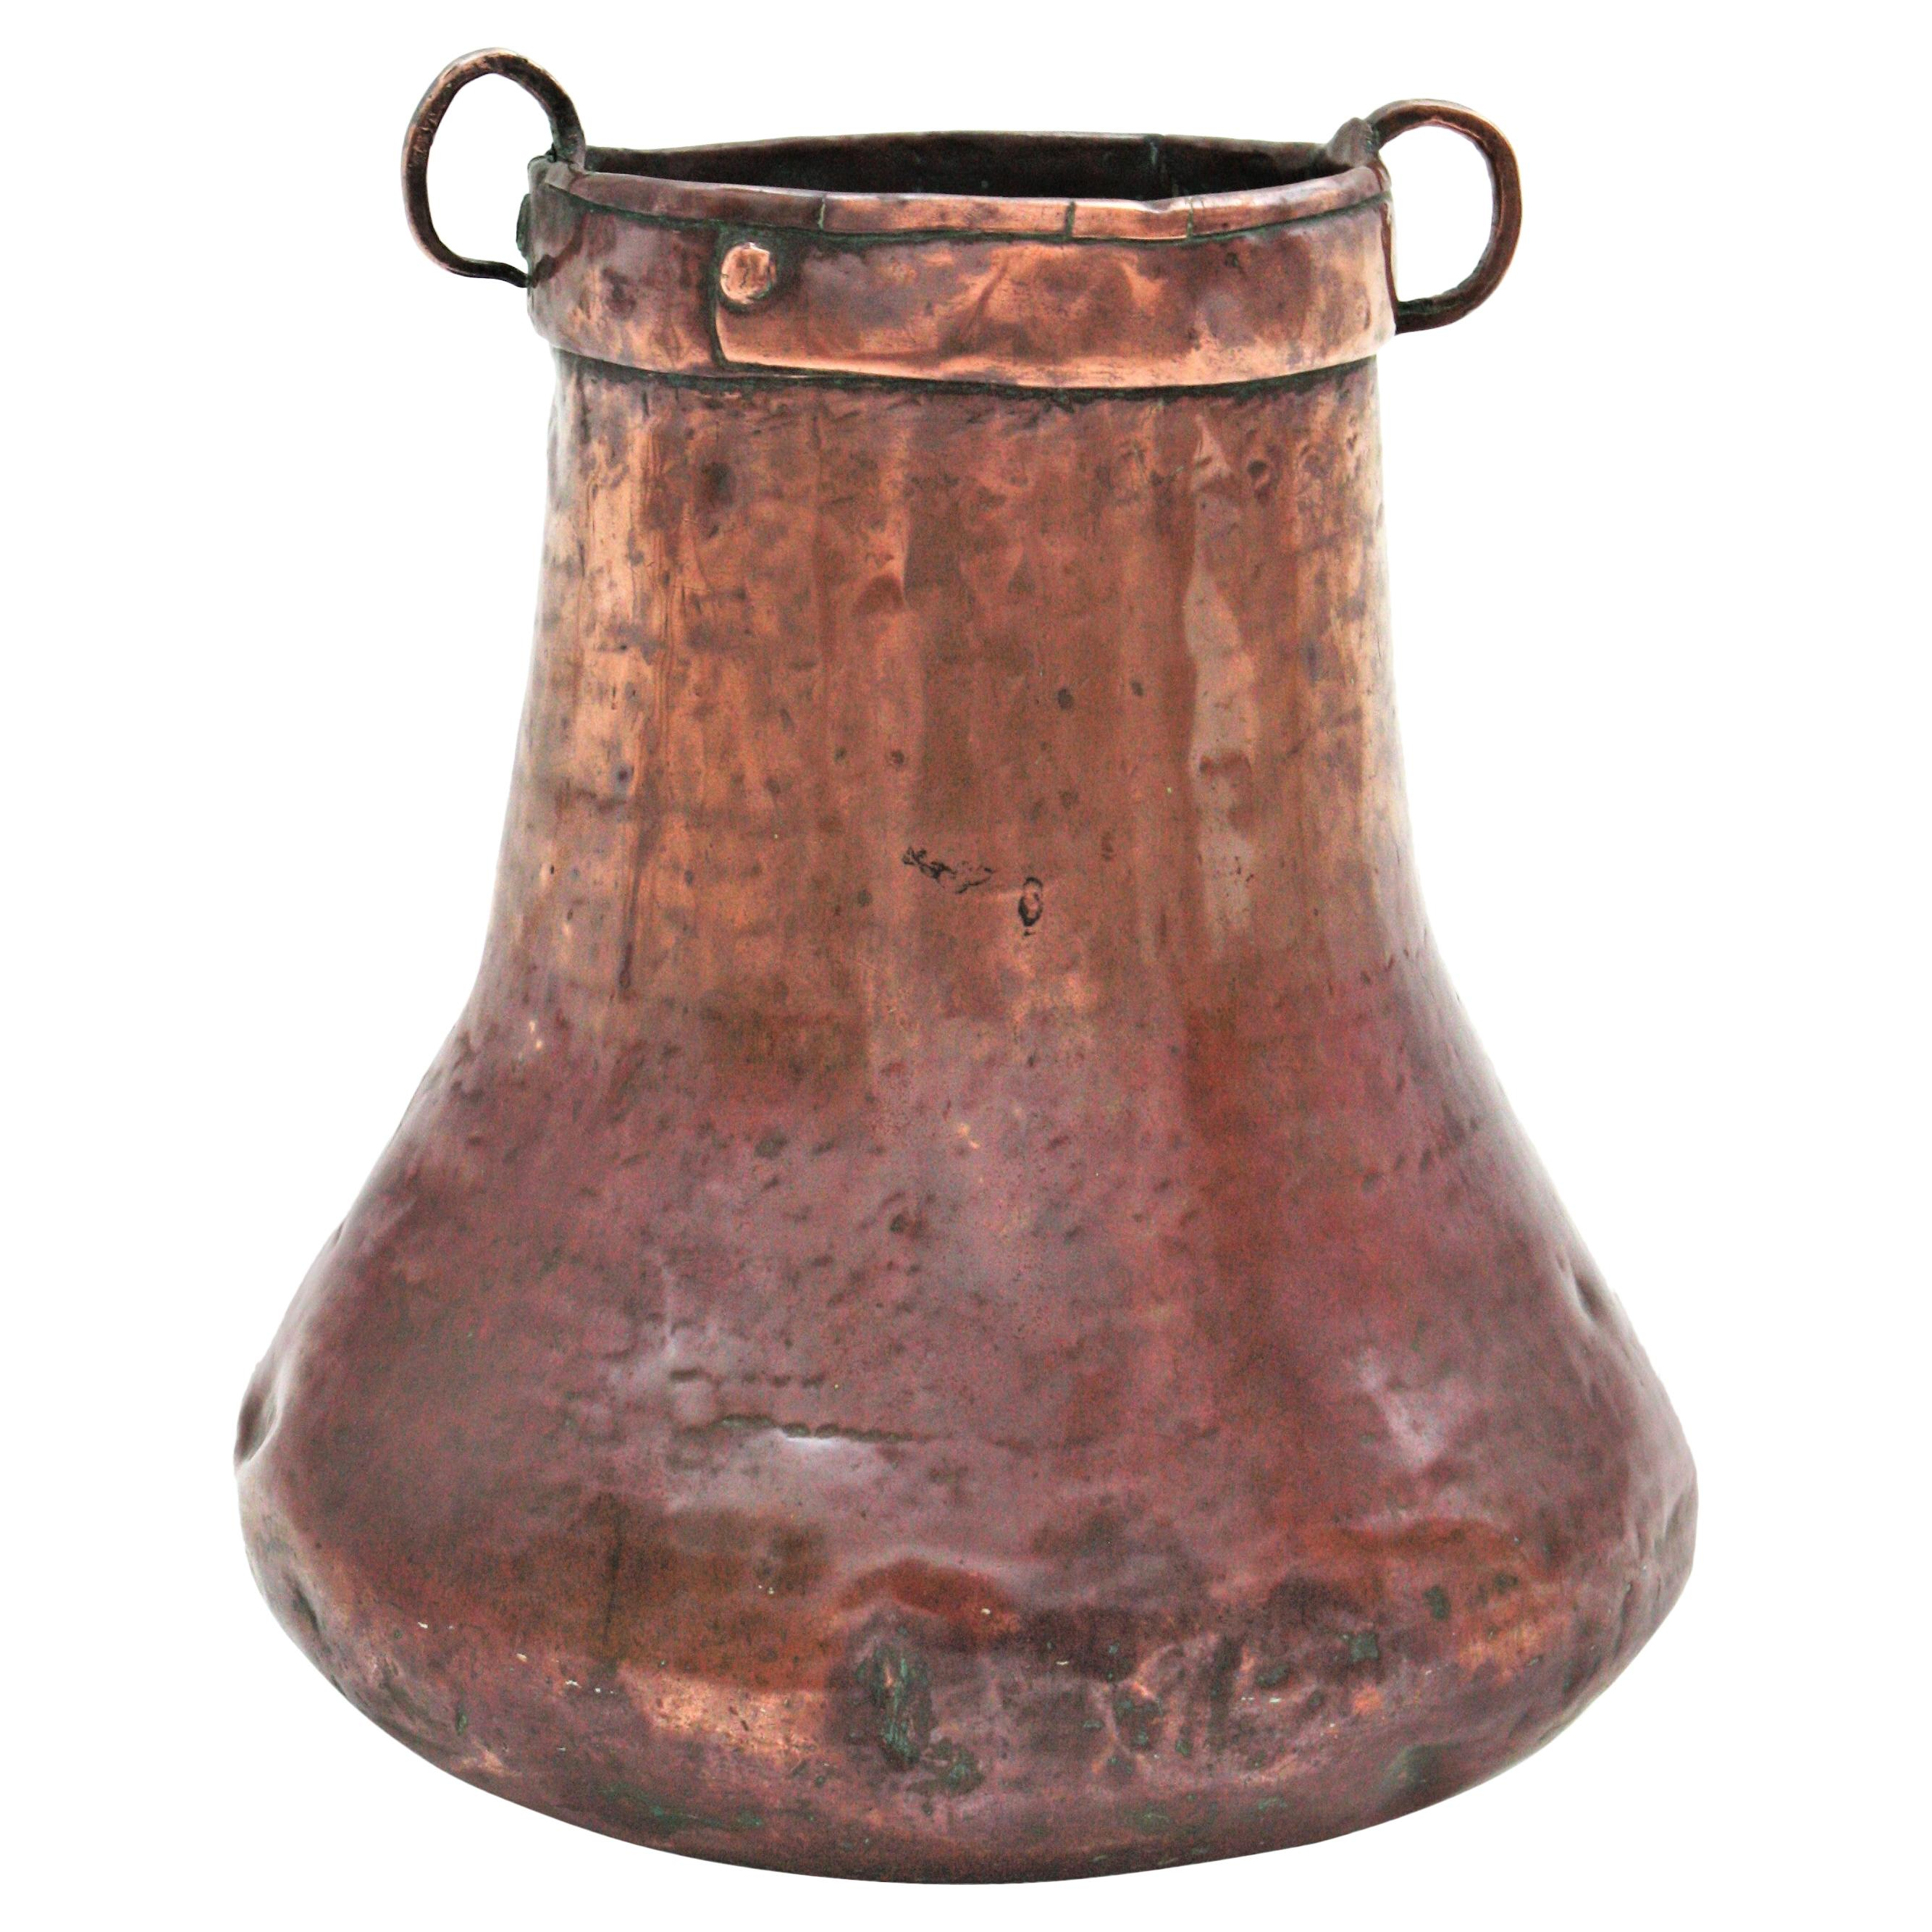 French Hammered Copper Tall Cauldron / Planter with Handles